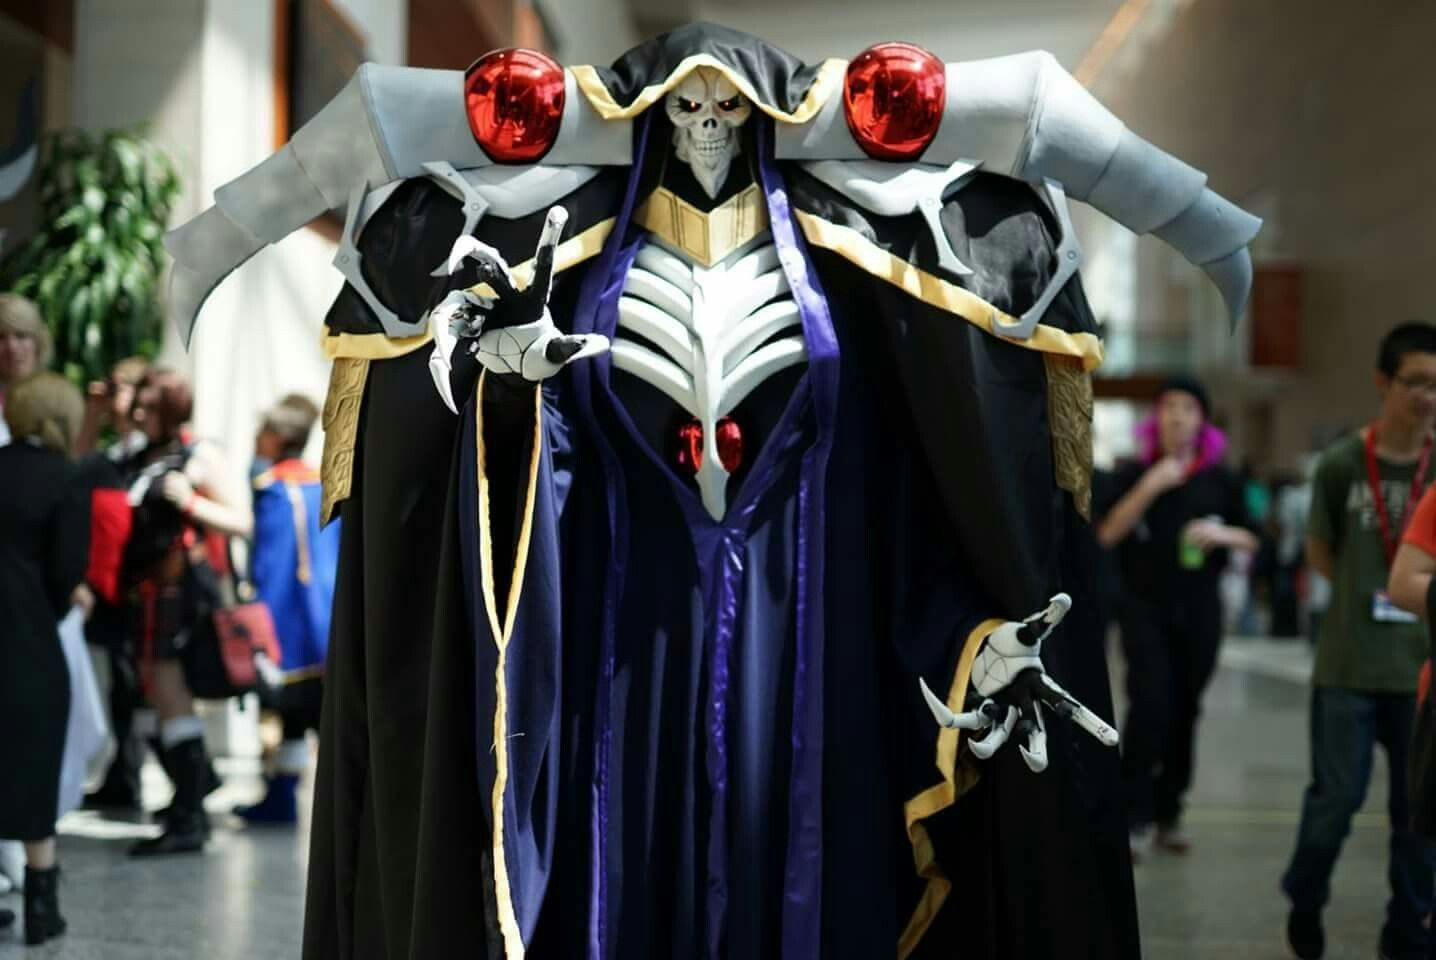 Cosplay of Ainz Ooal Gown from Overlord cosplay overlord